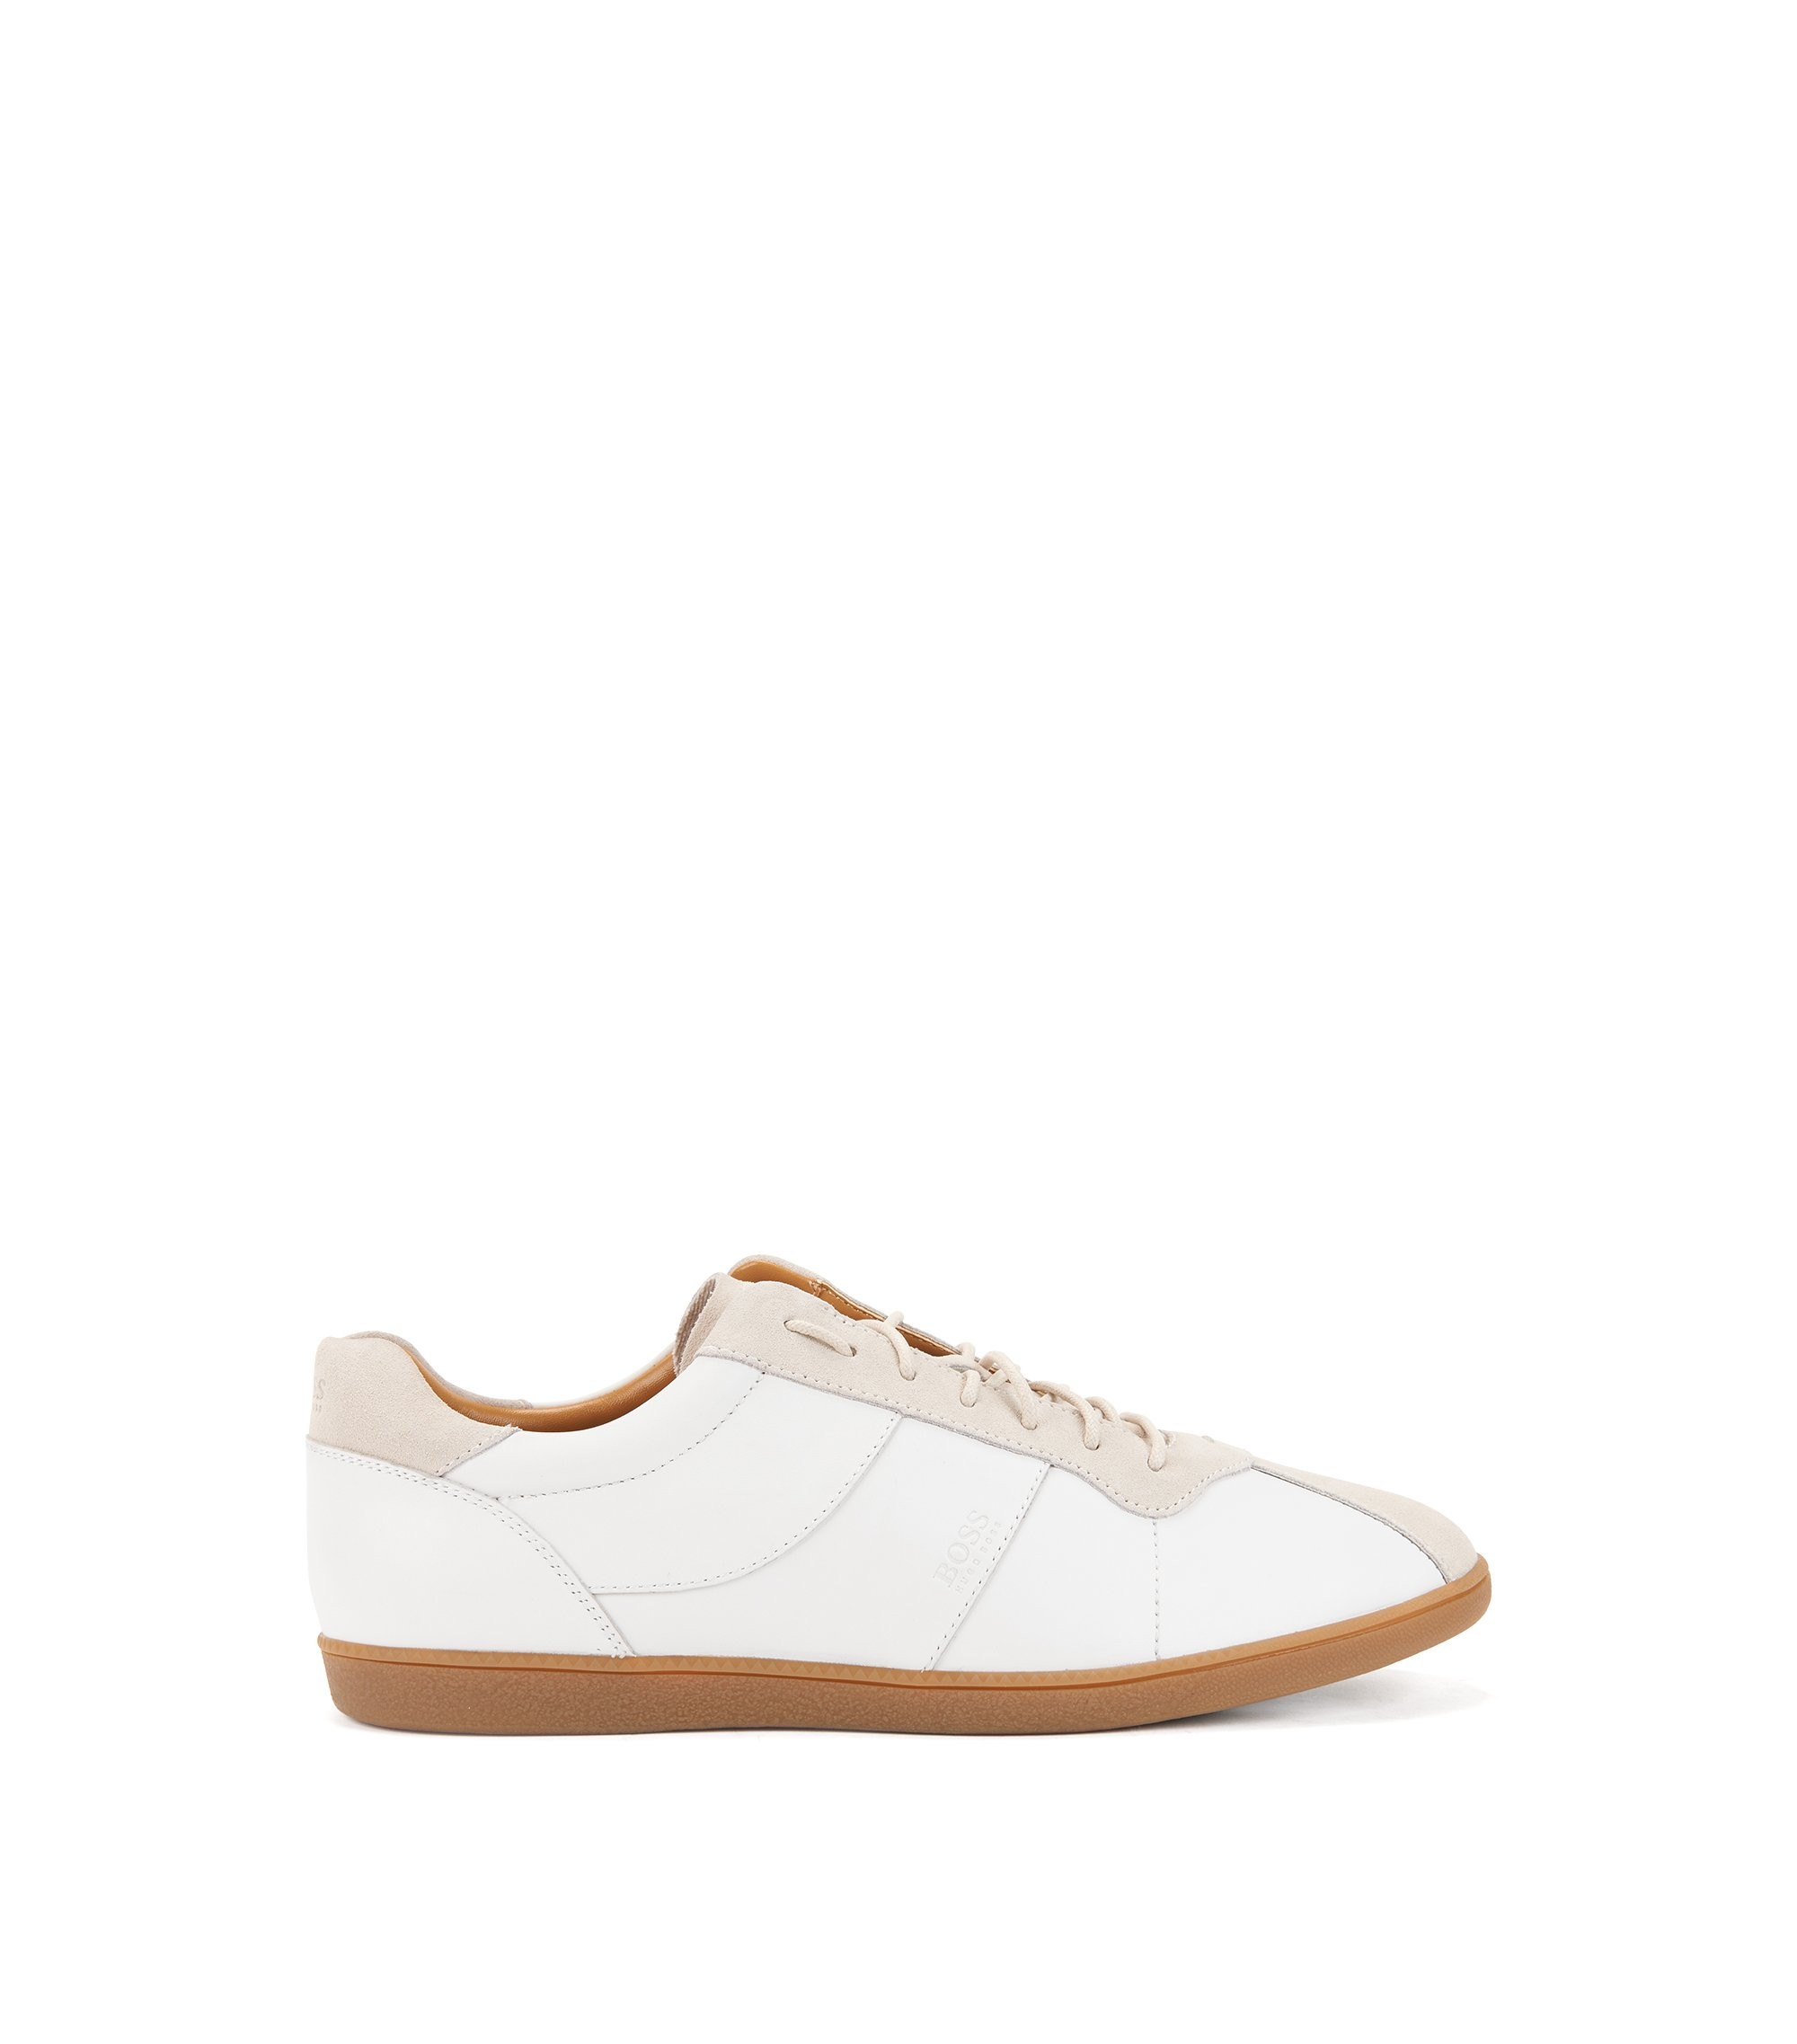 Tennis-style trainers in nappa leather with suede uppers, White